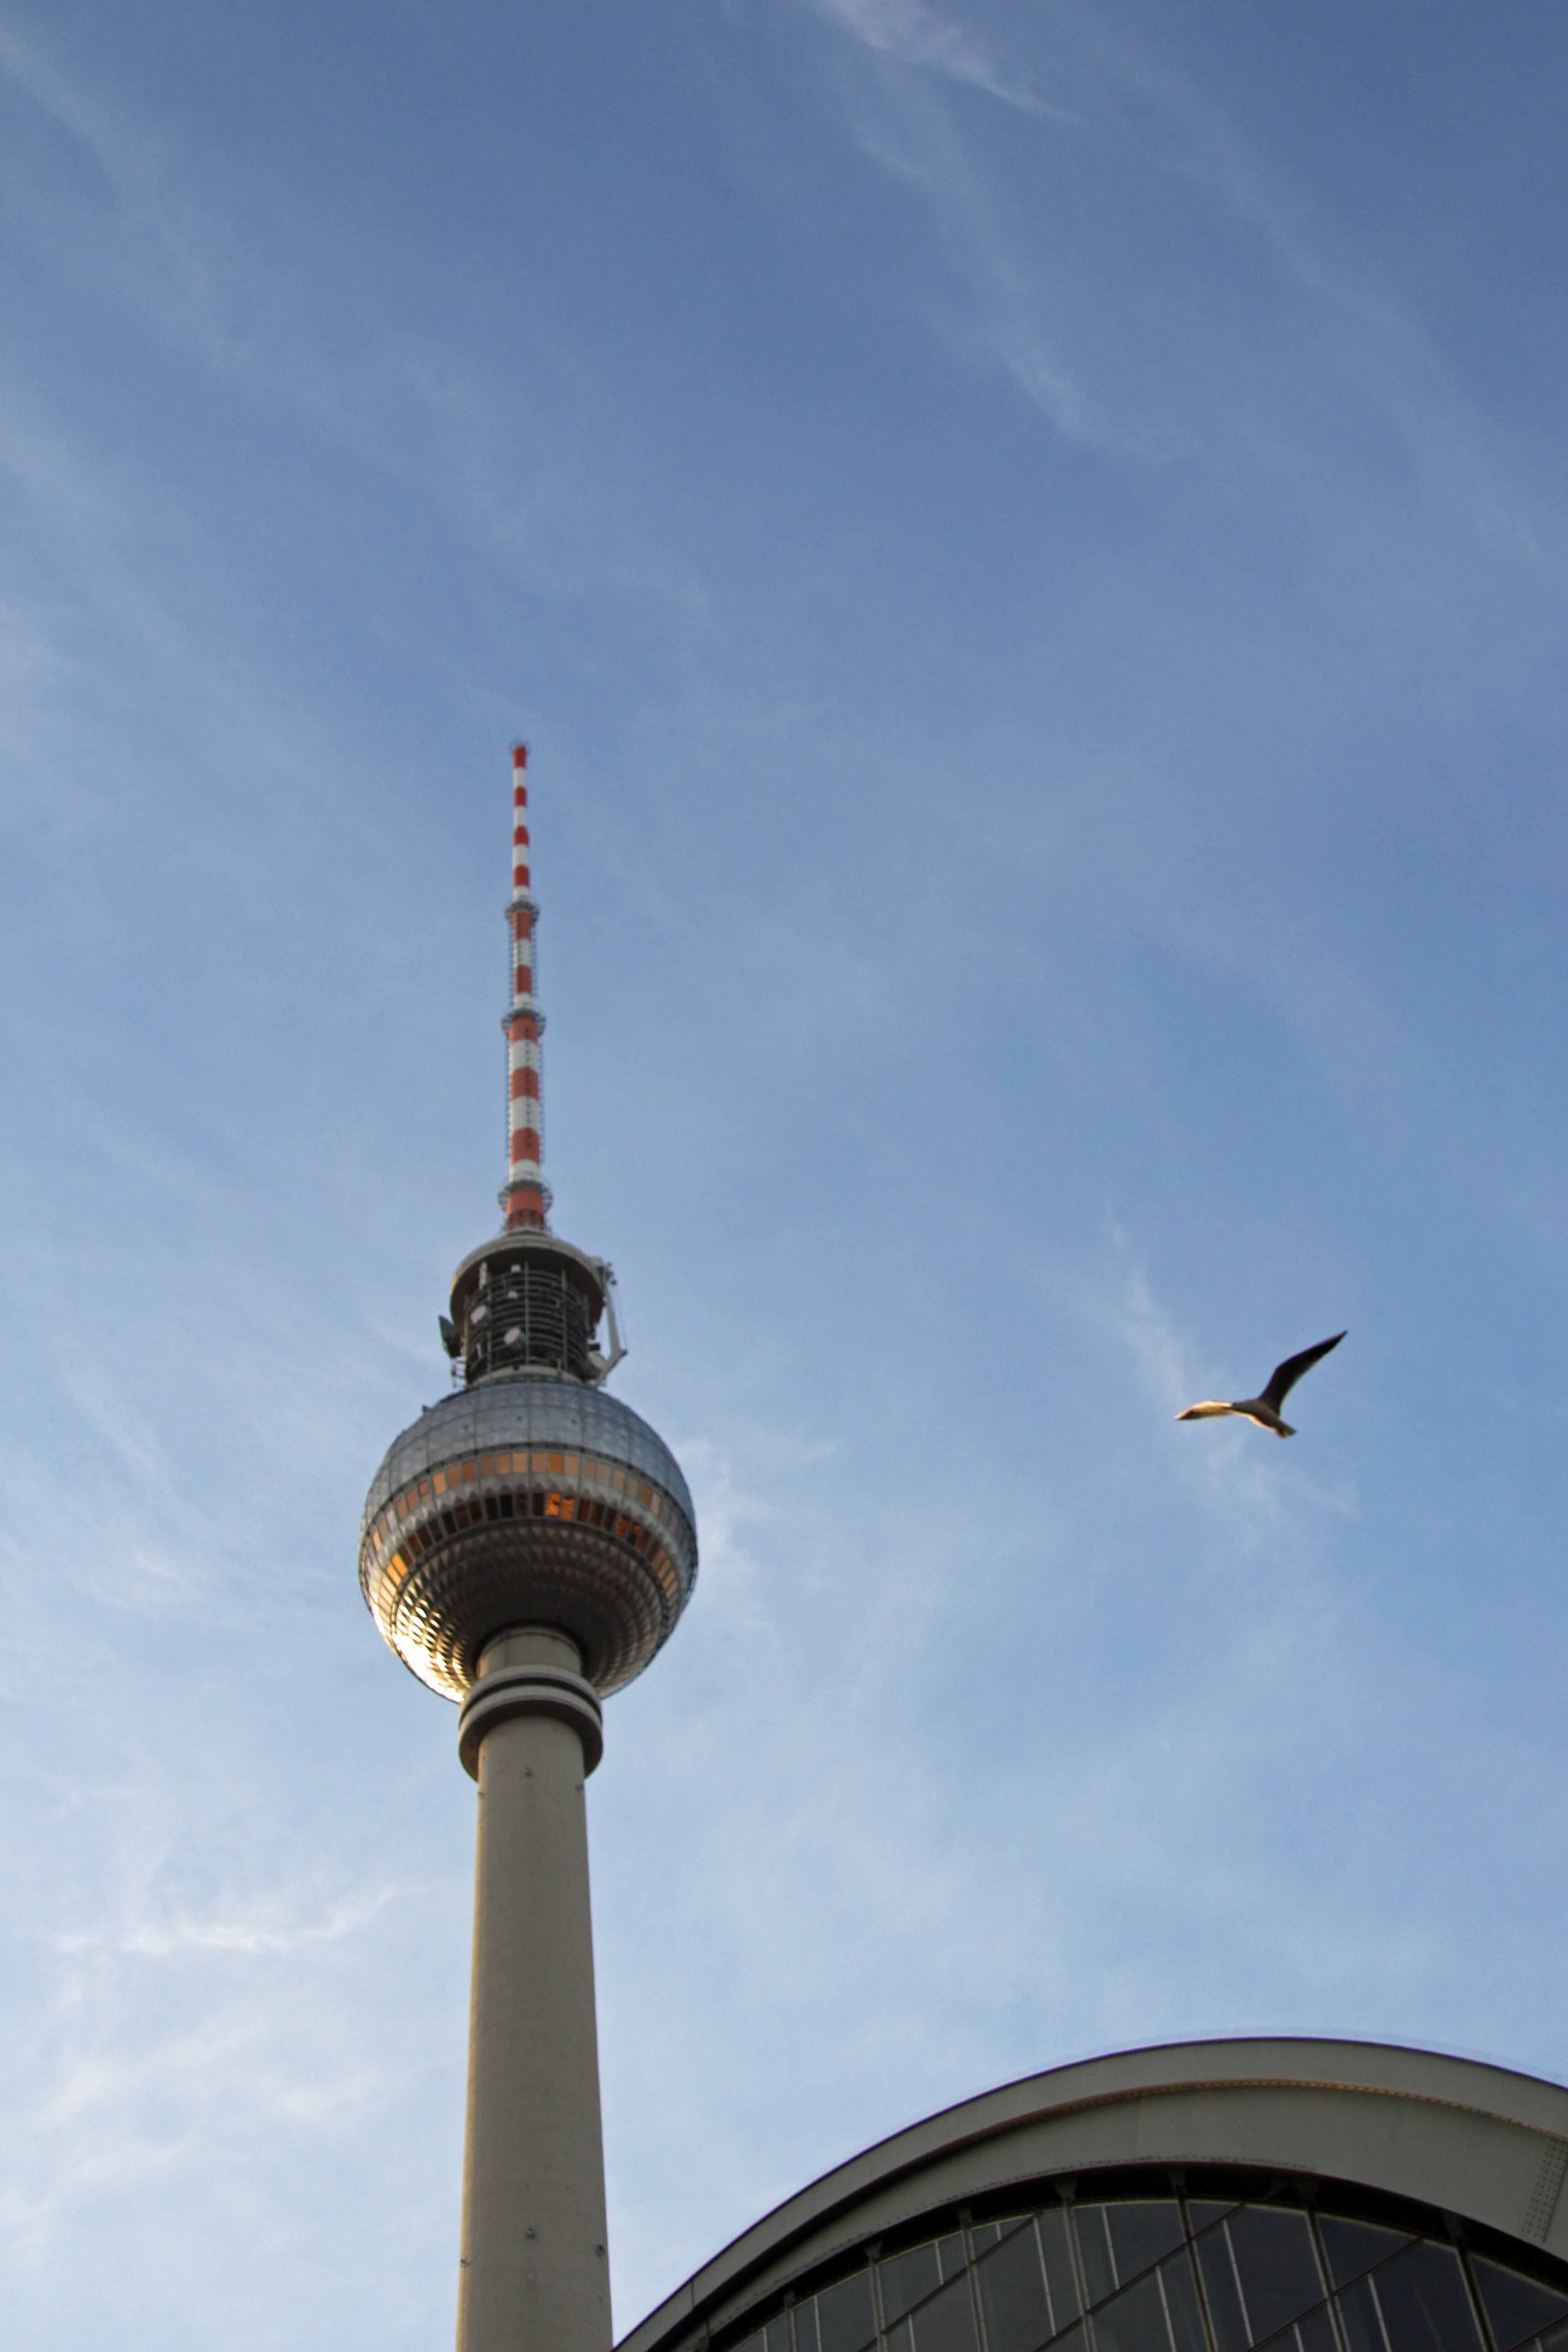 The Fernsehturm (TV Tower) in Berlin with a bird hovering nearby